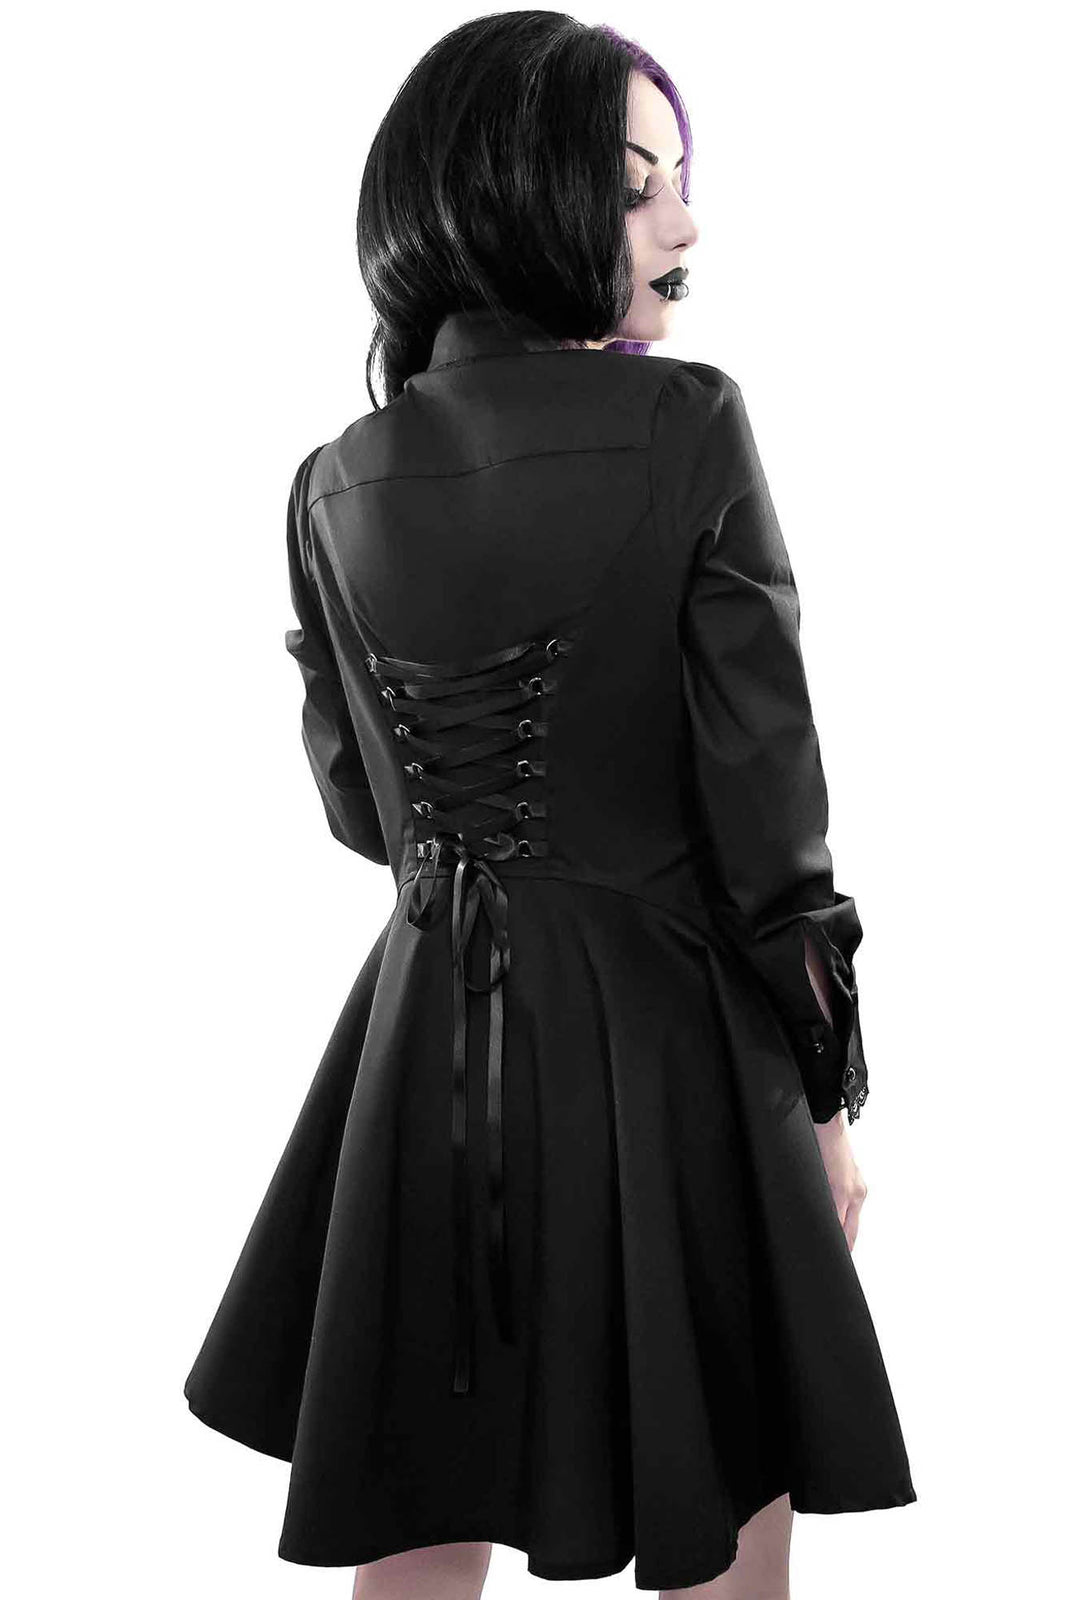 Tombstone Tourist Dress [B]